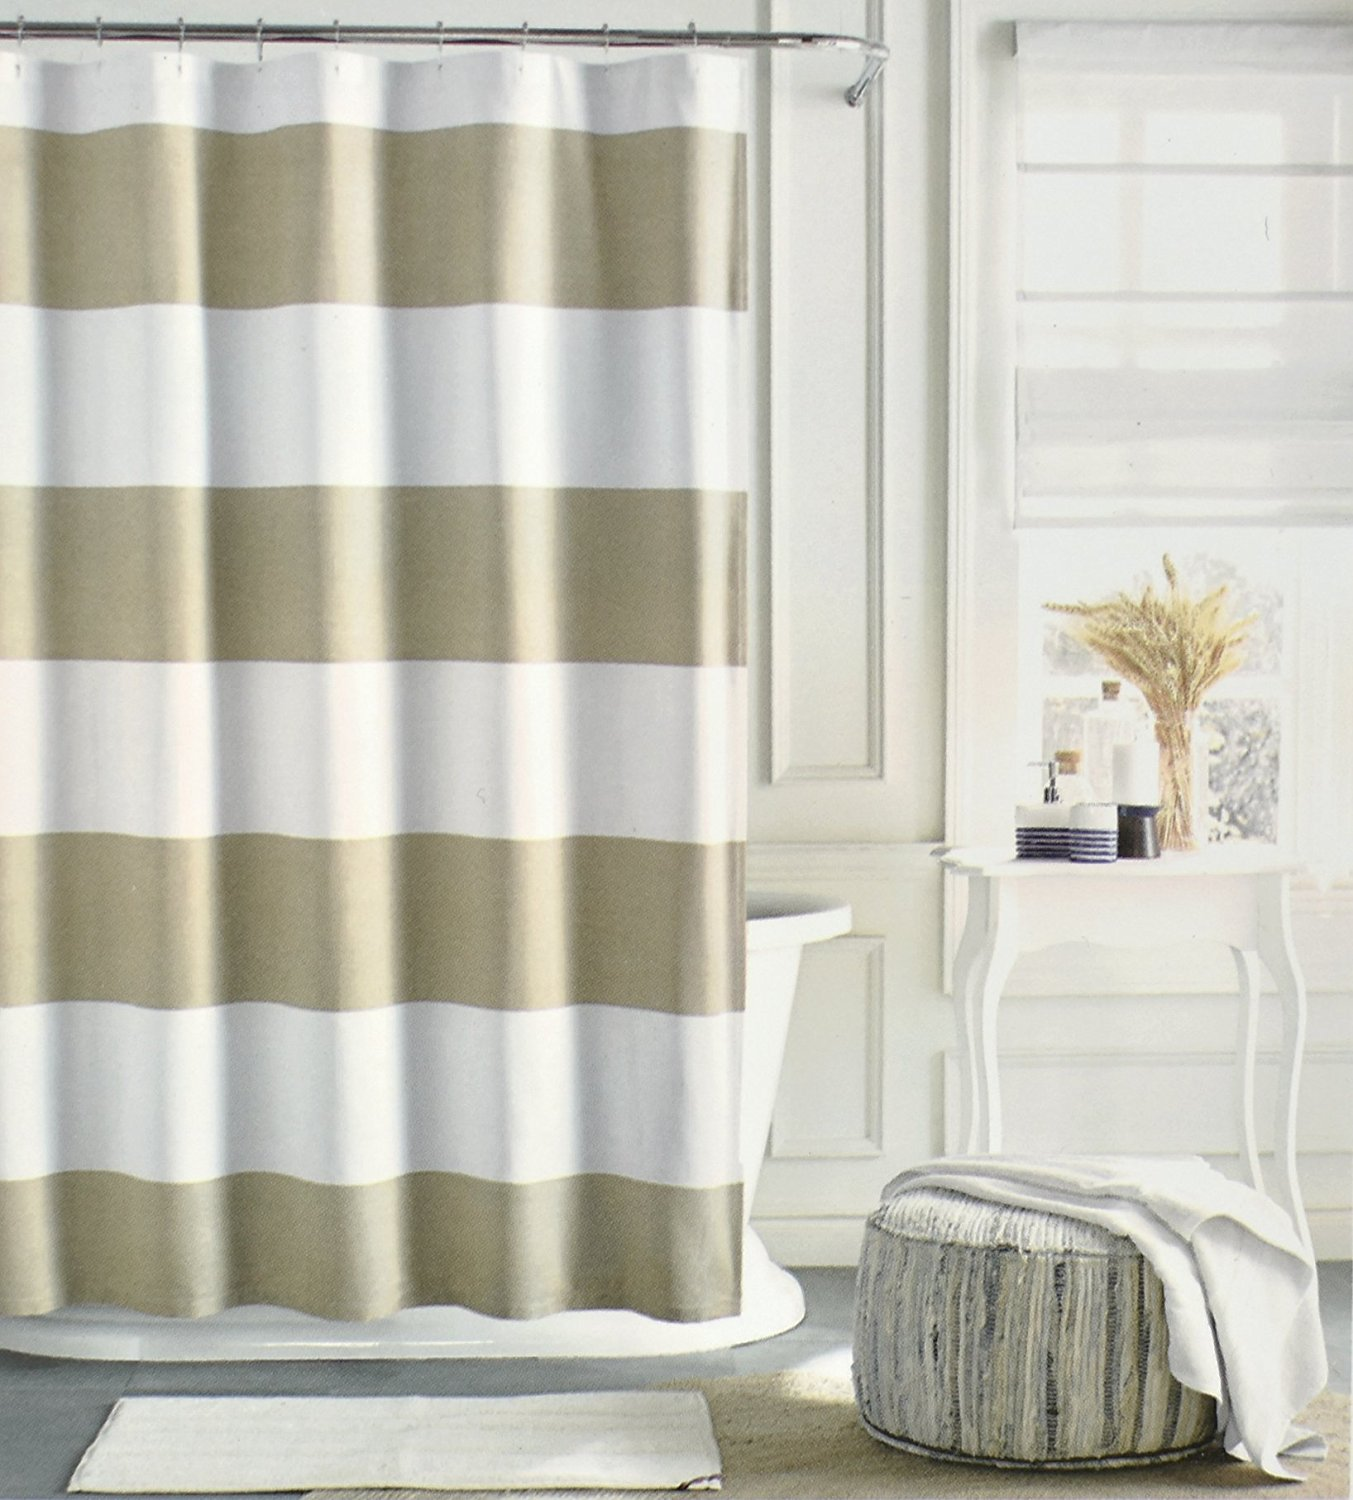 Get Quotations Tommy Hilfiger Cotton Shower Curtain Wide Stripes Fabric Beige Tan Cabana Stripe